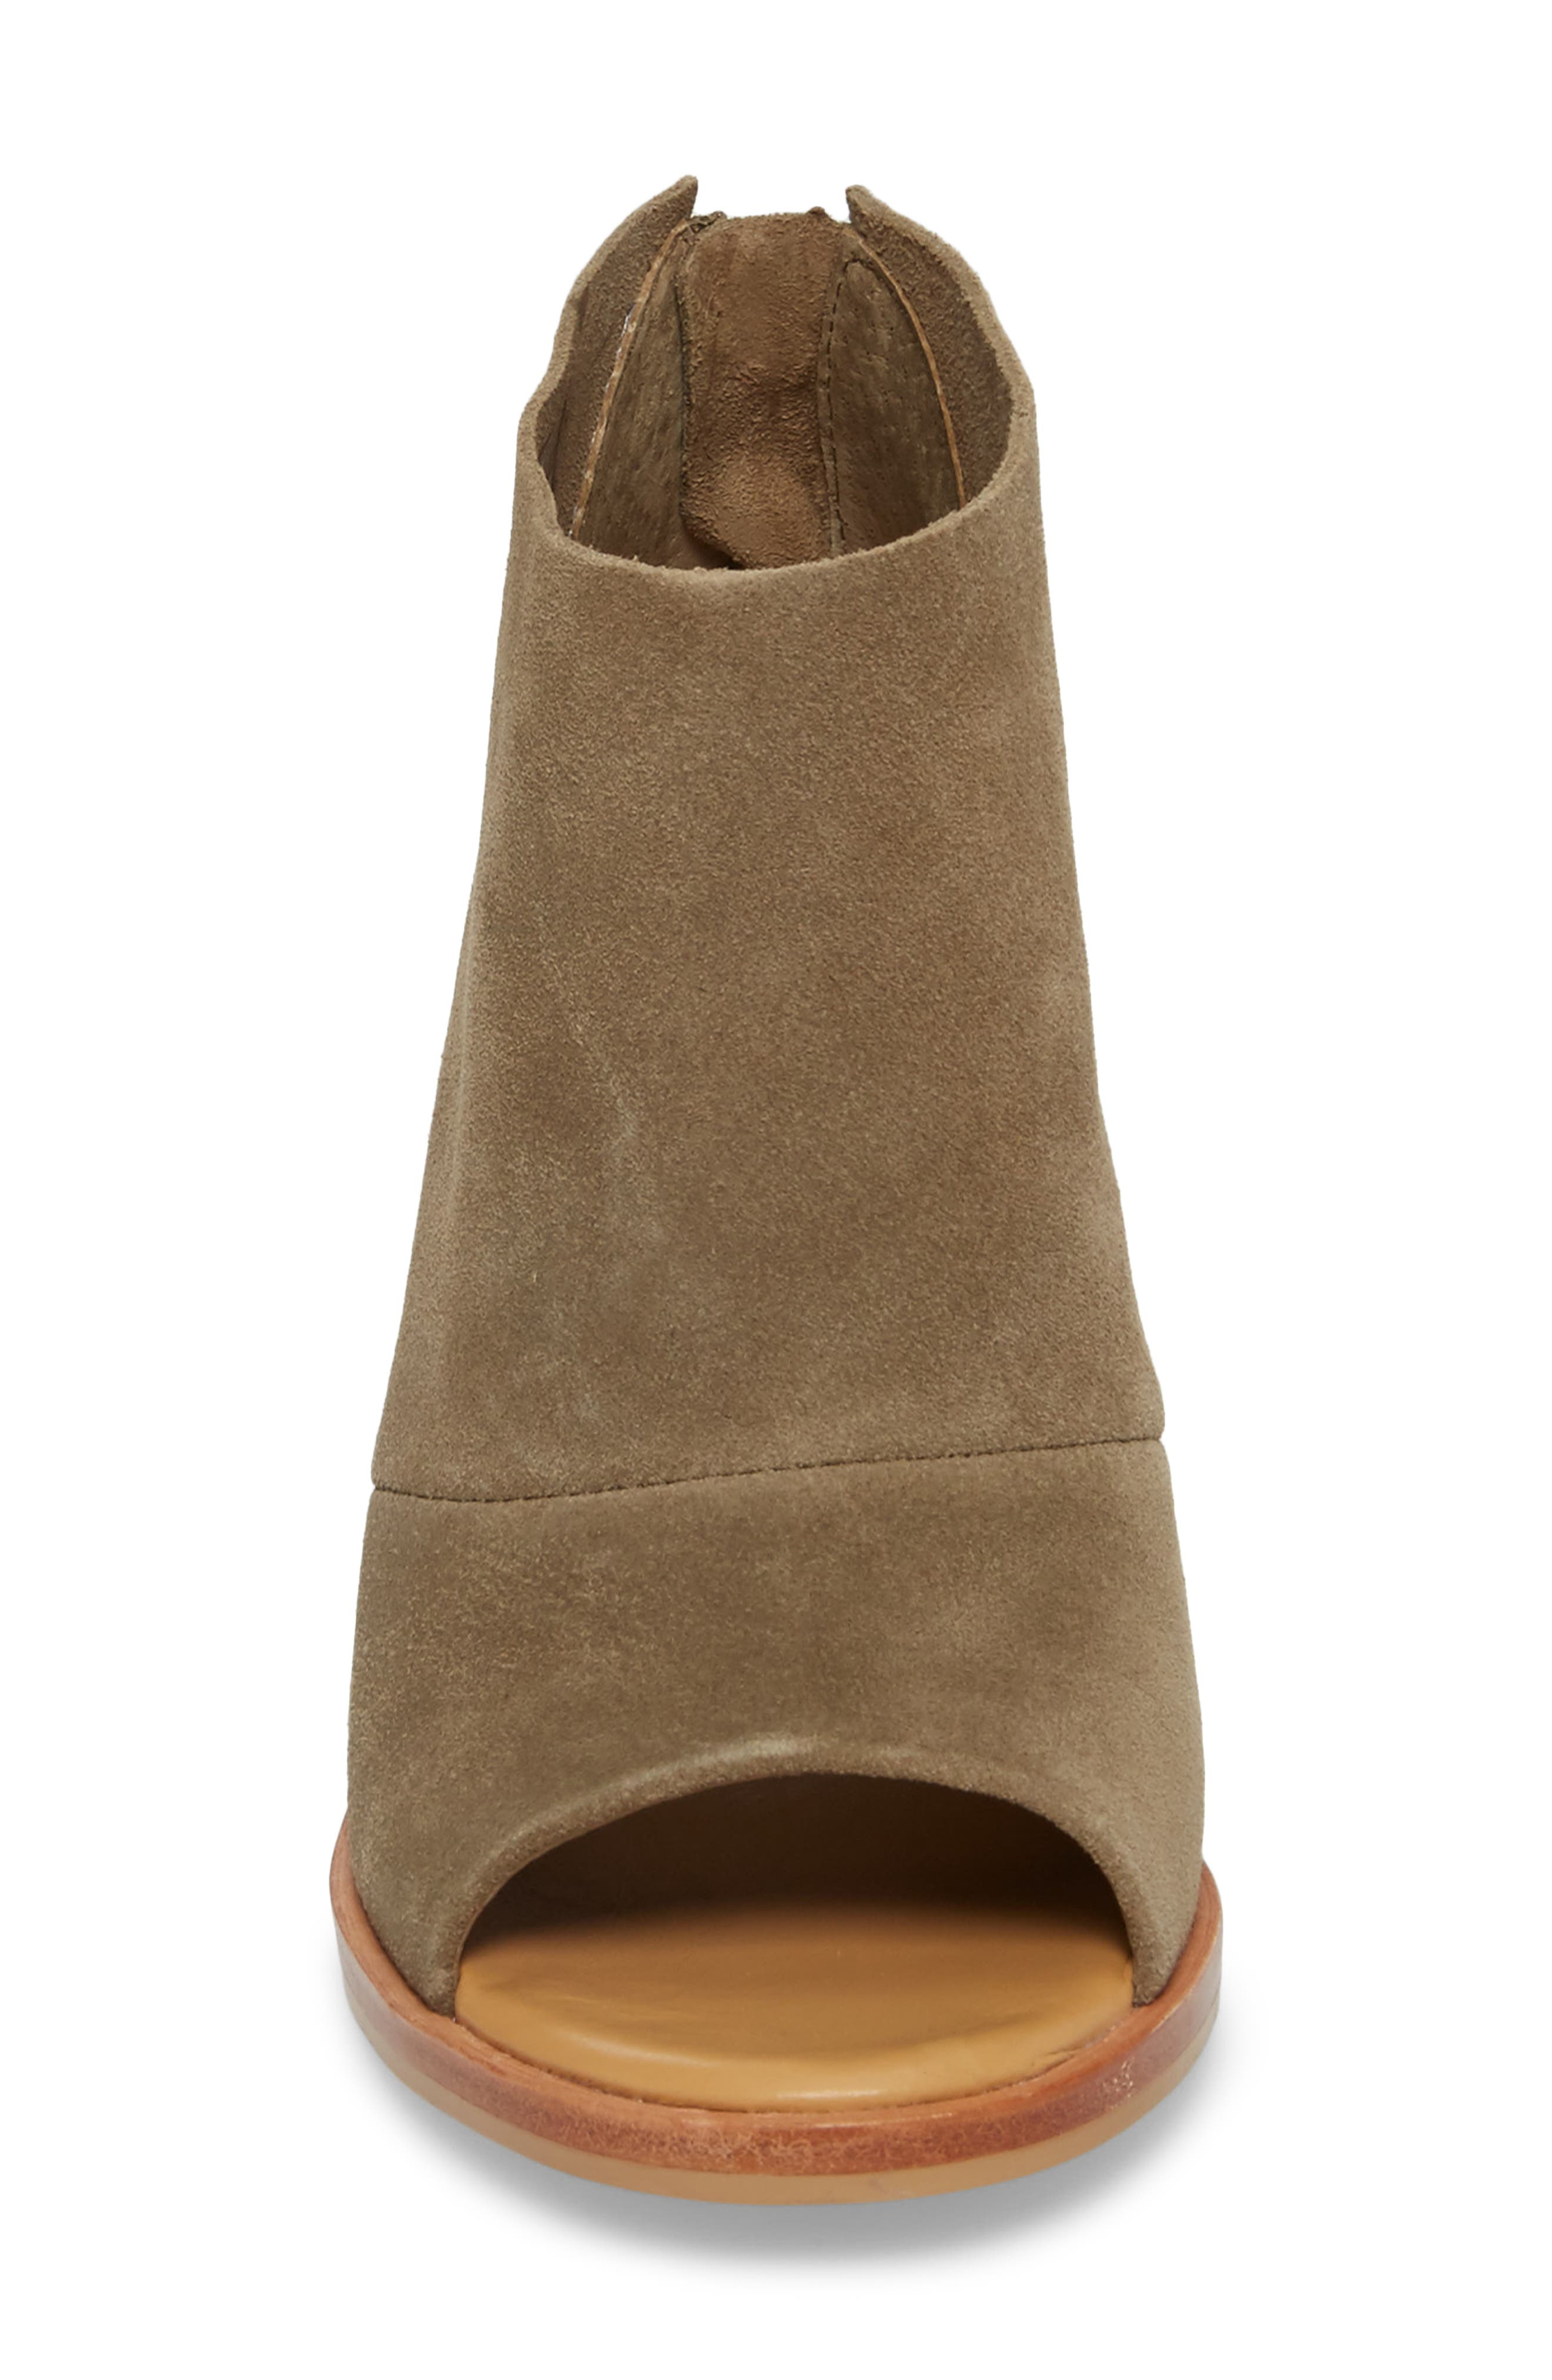 Ginger Peep Toe Bootie,                             Alternate thumbnail 4, color,                             Apple Green Suede